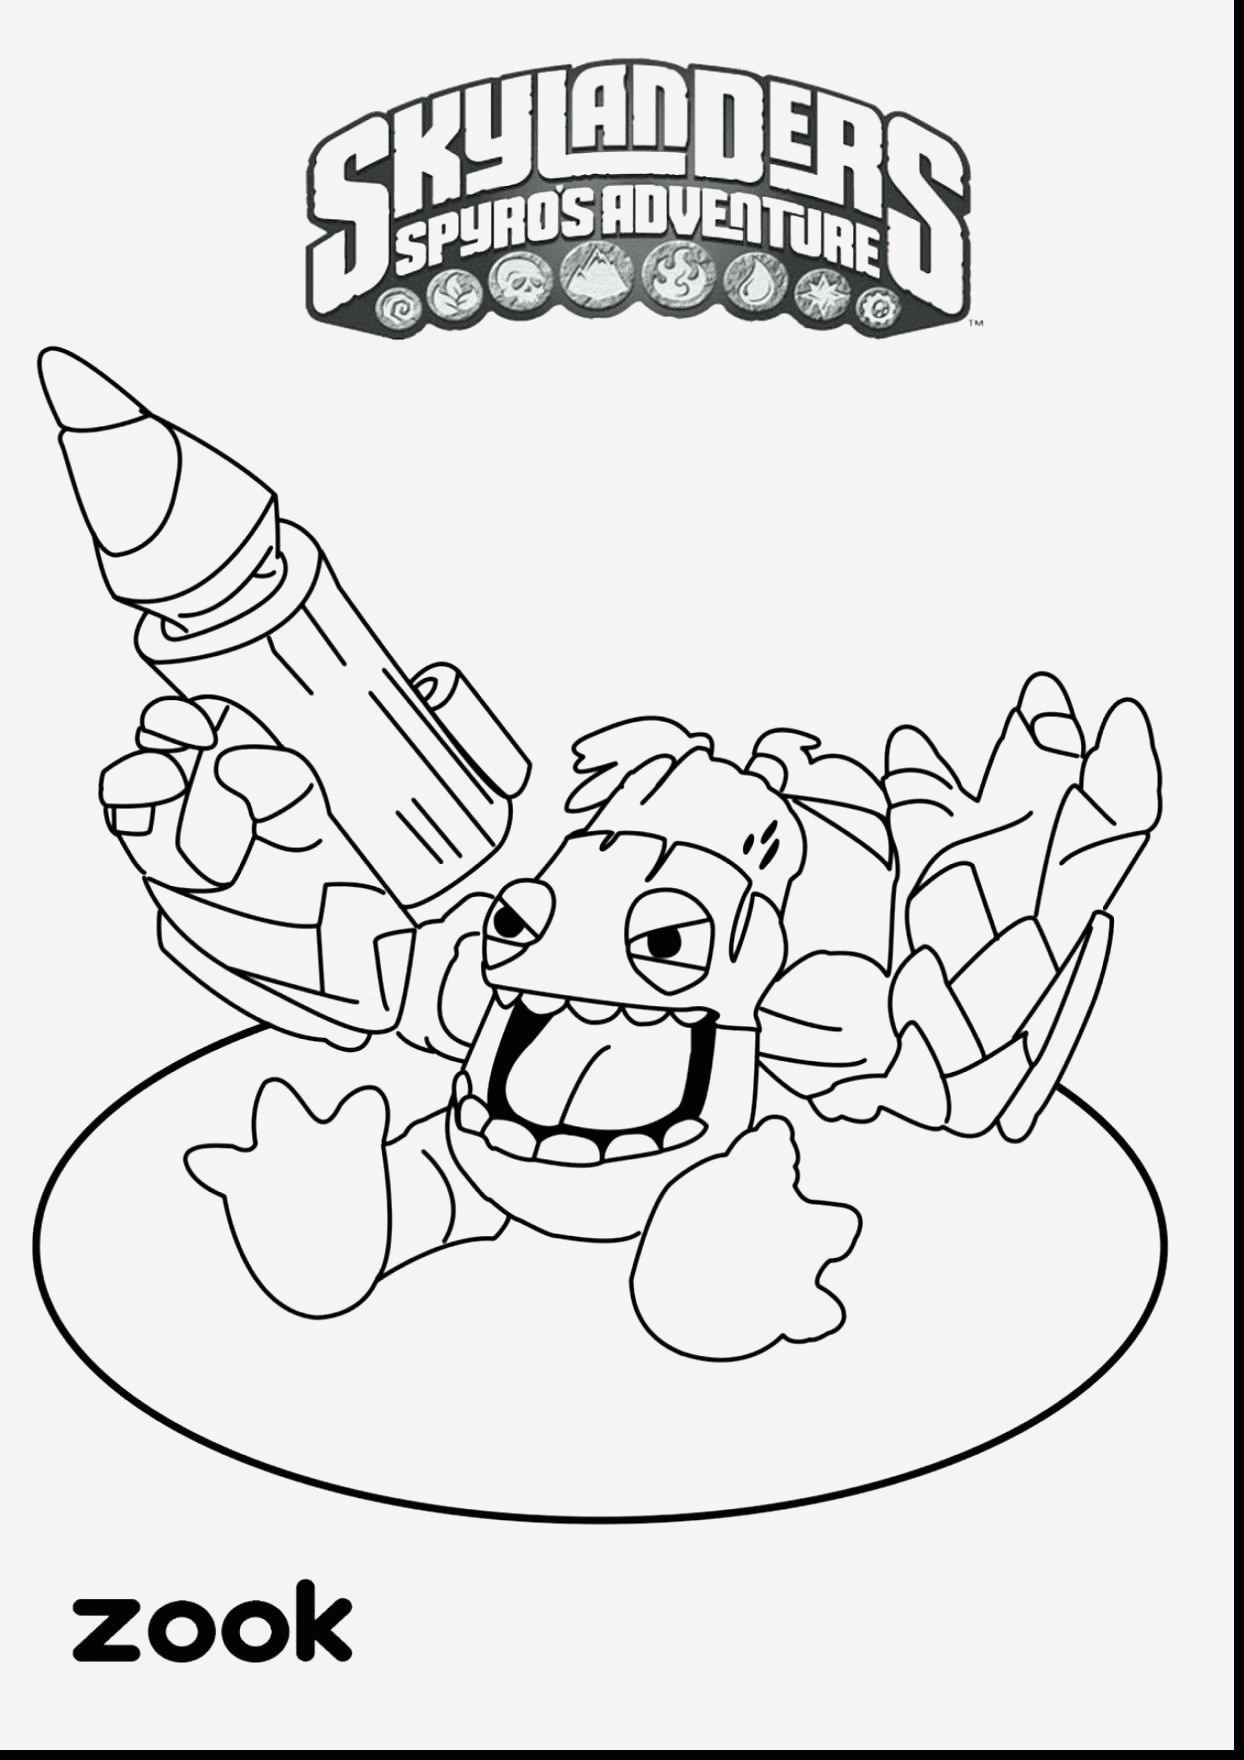 shopkins printable coloring pages Collection-Cupcake Coloring Pages Free Printable 15 Luxury Cupcake Coloring Pages Cupcake Coloring Pages Best Easy 5-q